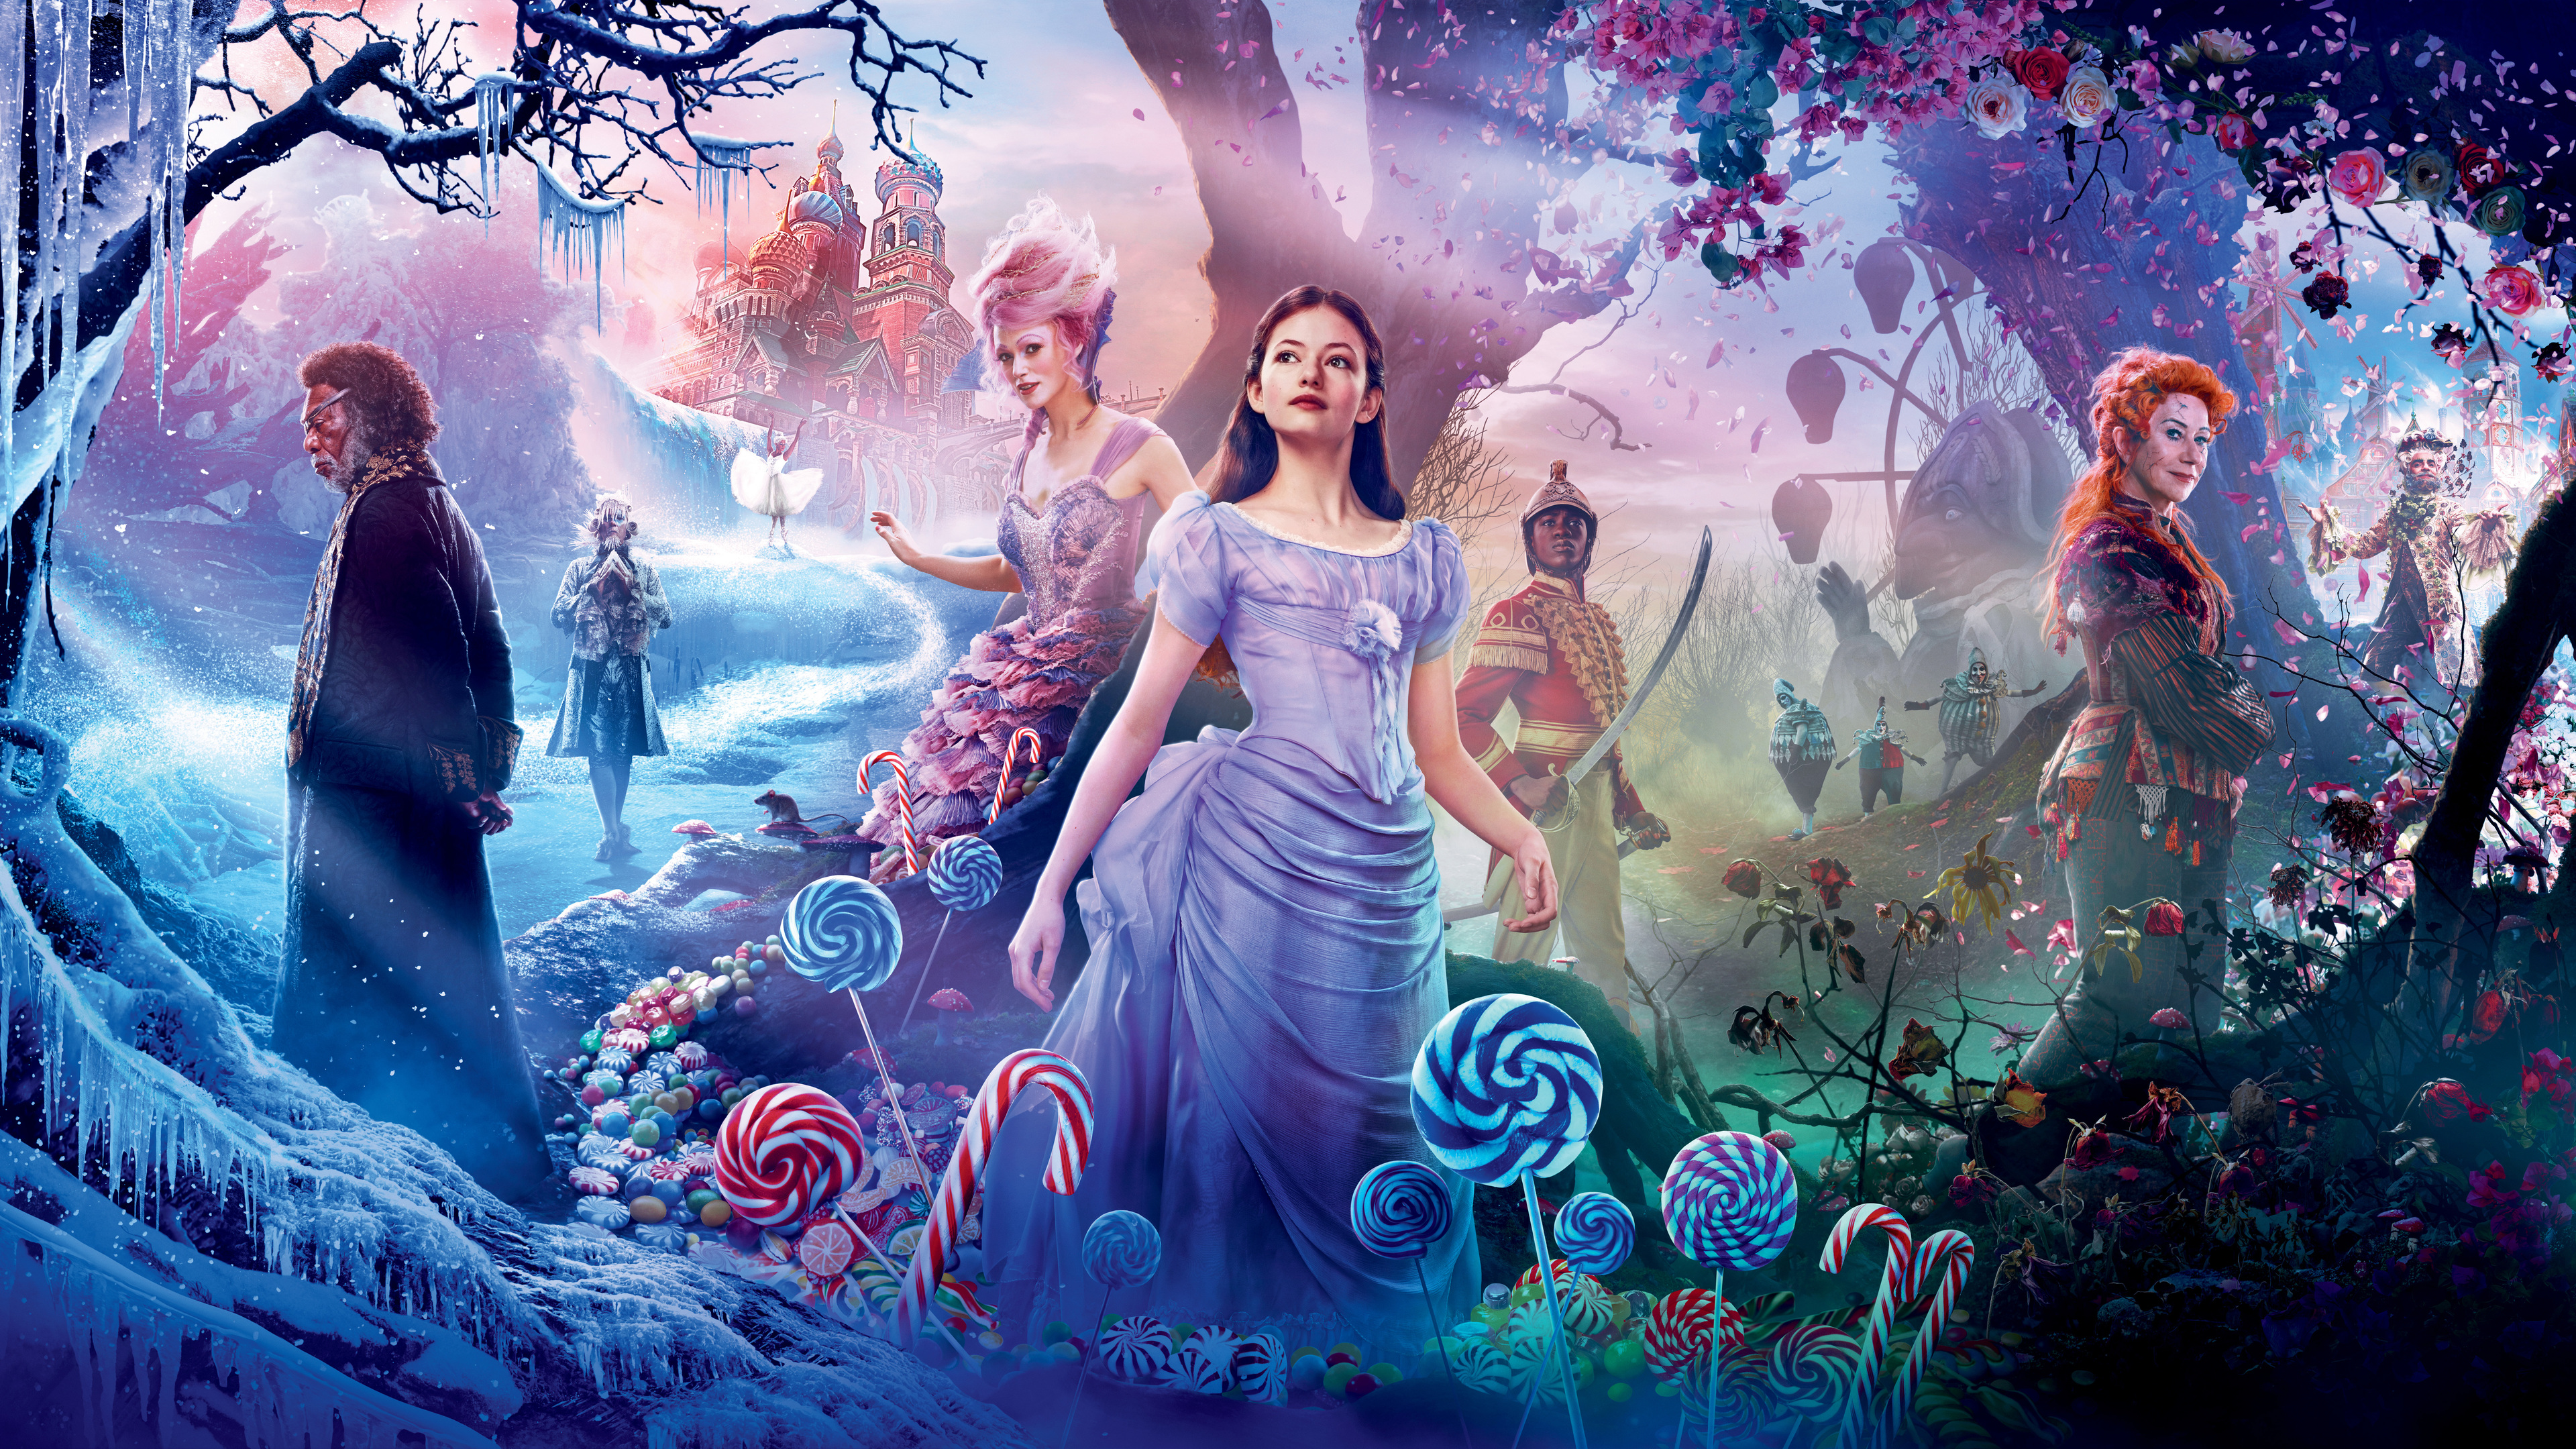 the nutcracker and the four realms 2018 4k 1541719525 - The Nutcracker And The Four Realms 2018 4k - the nutcracker and the four realms wallpapers, movies wallpapers, hd-wallpapers, 4k-wallpapers, 2018-movies-wallpapers